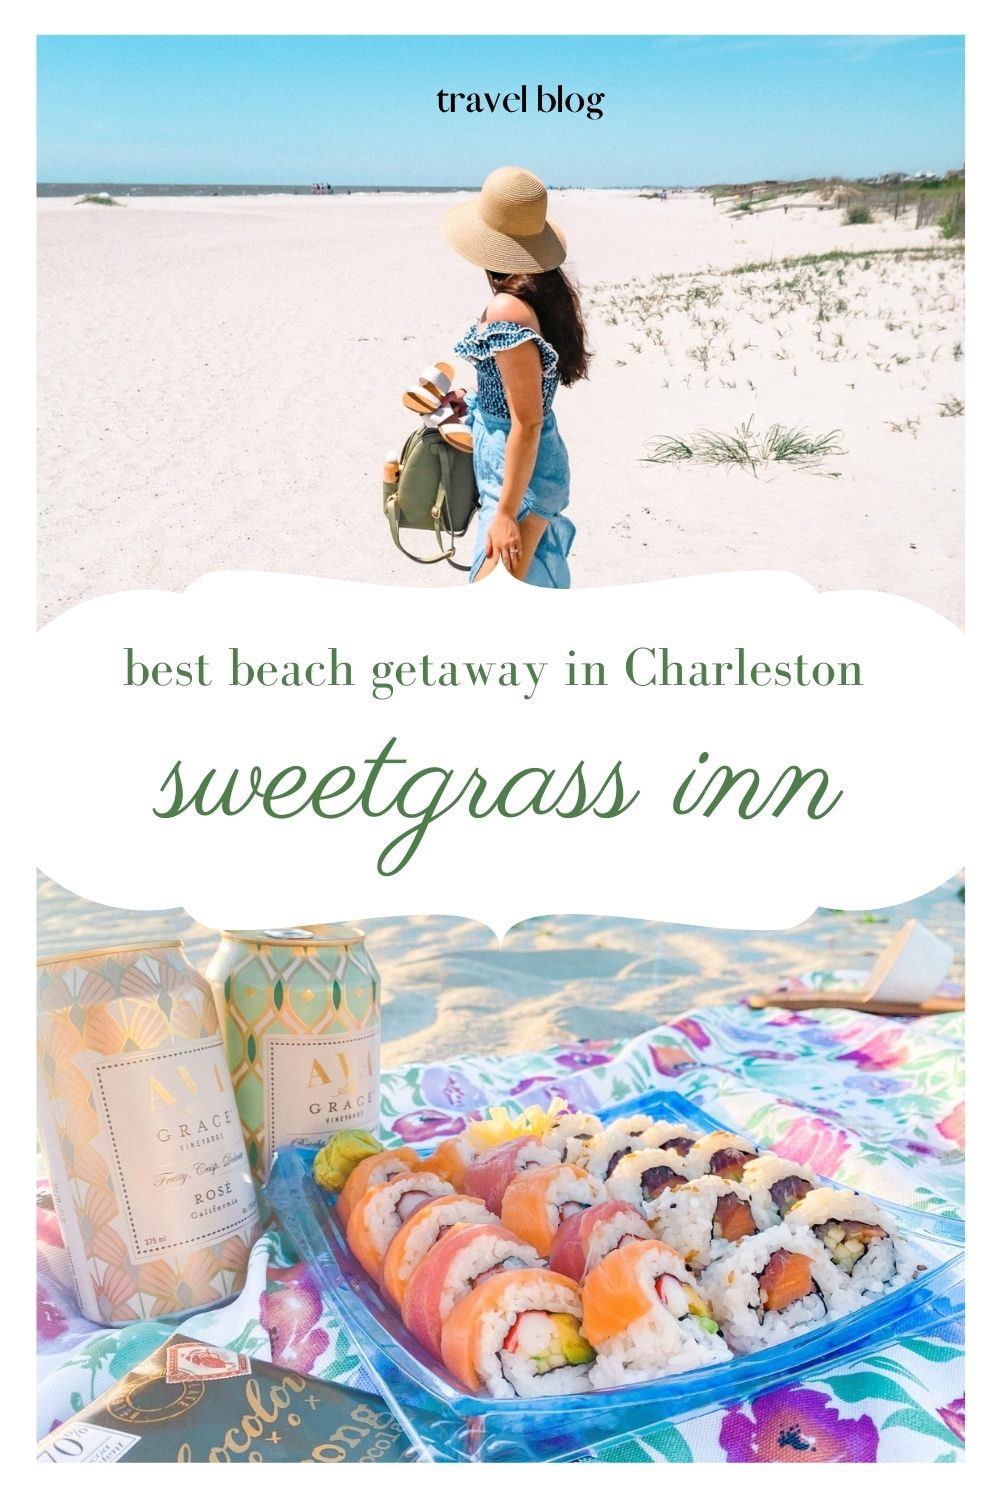 sweetgrass inn, isle of palms, wild dunes resort, resort with pool, vacation South Carolina, Sullivans island, coastal provisions, wedding isle of palms, food, travel guide, where to eat, where to stay, what to do, relax, spa, sweetgrass in resort, coop and frose,